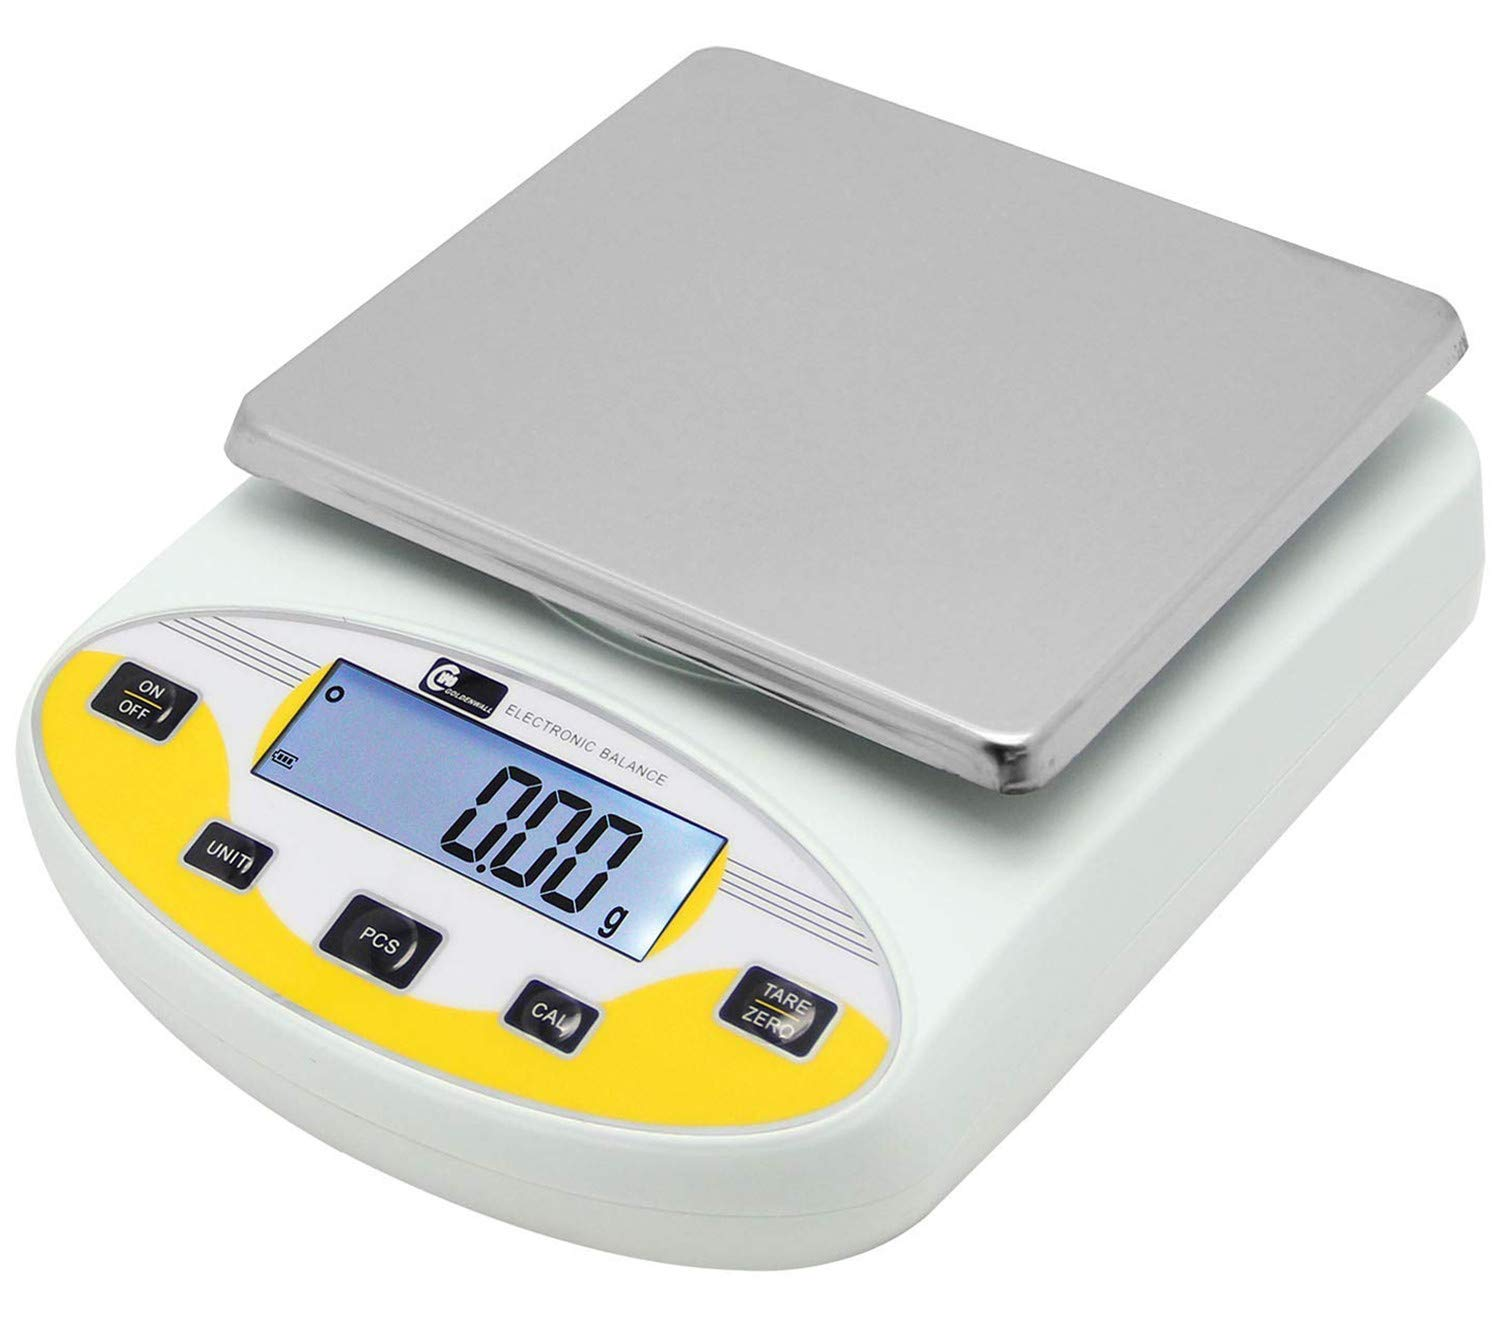 CGOLDENWALL Lab Digital Precision Analytical Balance Lab Scale Precision Scale Laboratory Weighing Electronic Balance Jewelry Scales Gold Balance Kitchen Scales Yellow Calibrated (5000g, 0.01g) by CGOLDENWALL